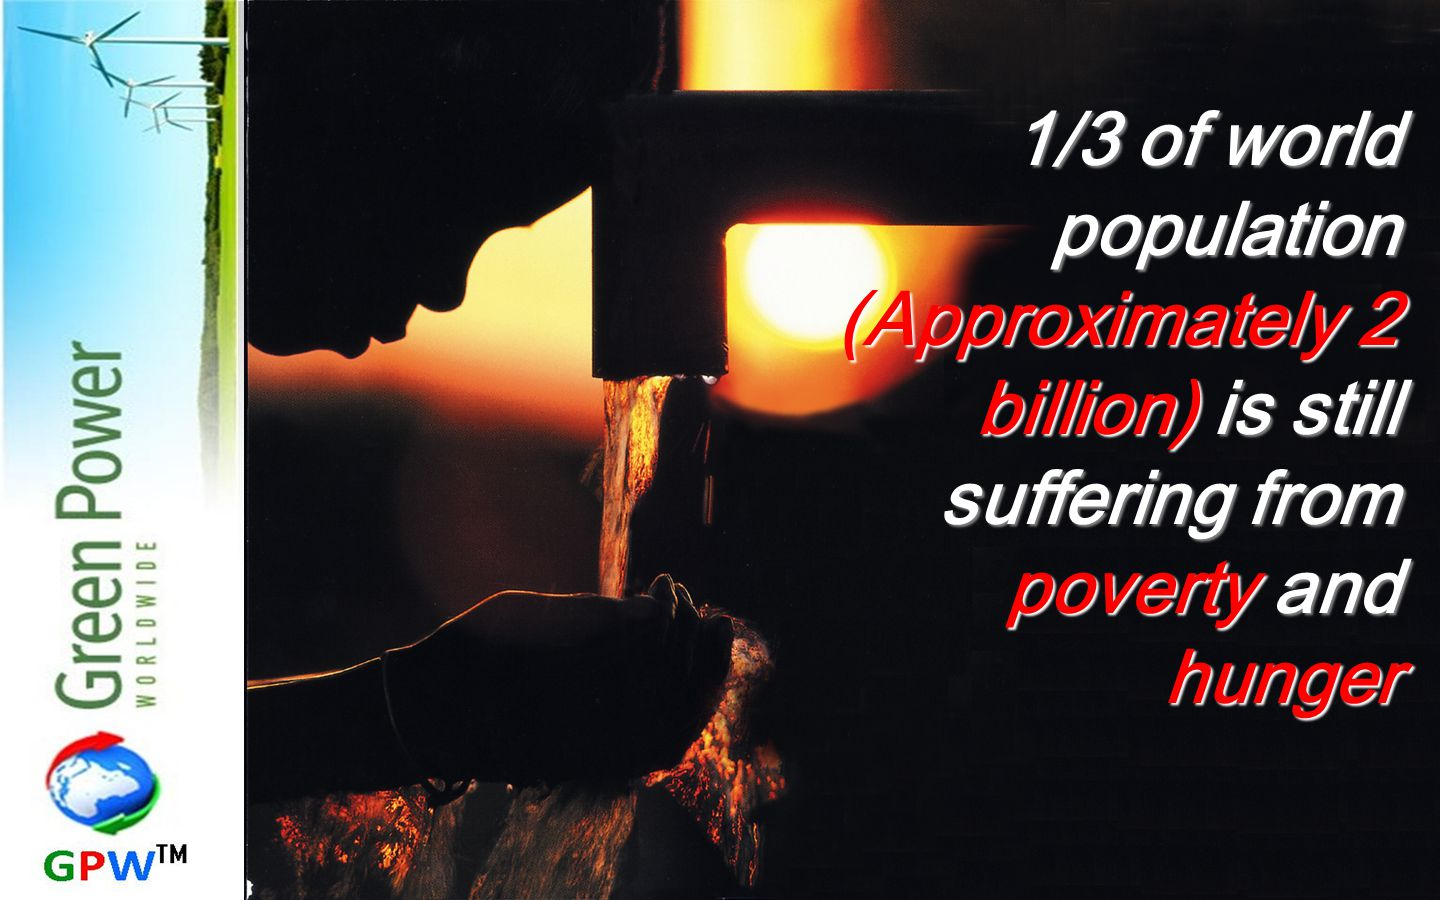 1/3 of world population (Approximately 2 billion) is still suffering from poverty and hunger